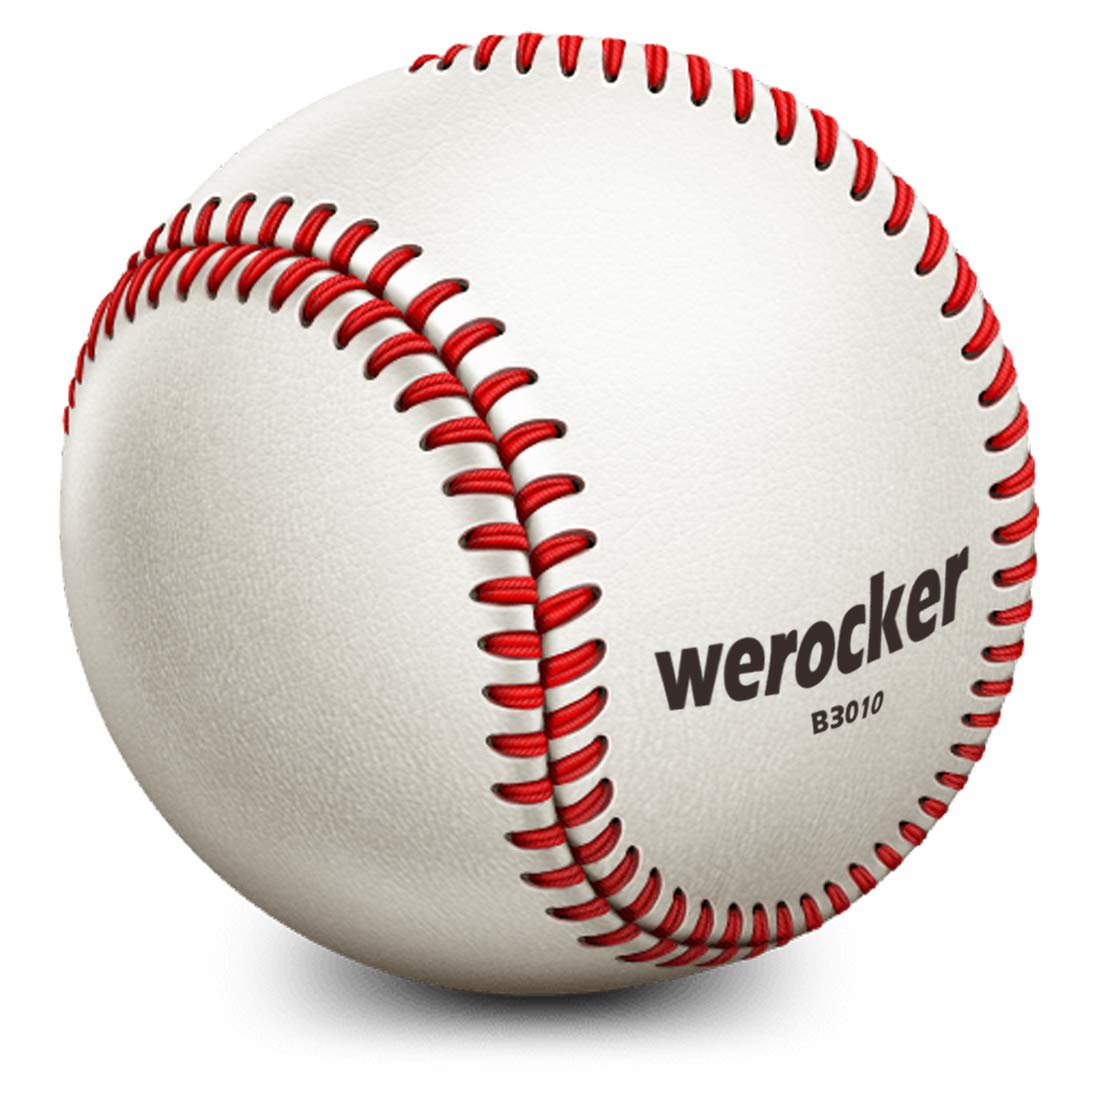 SZRHY Baseball bä lle anfä nger Baseball bä lle fü r Recreational League Play Wettbewerb 9 Zoll Weiß